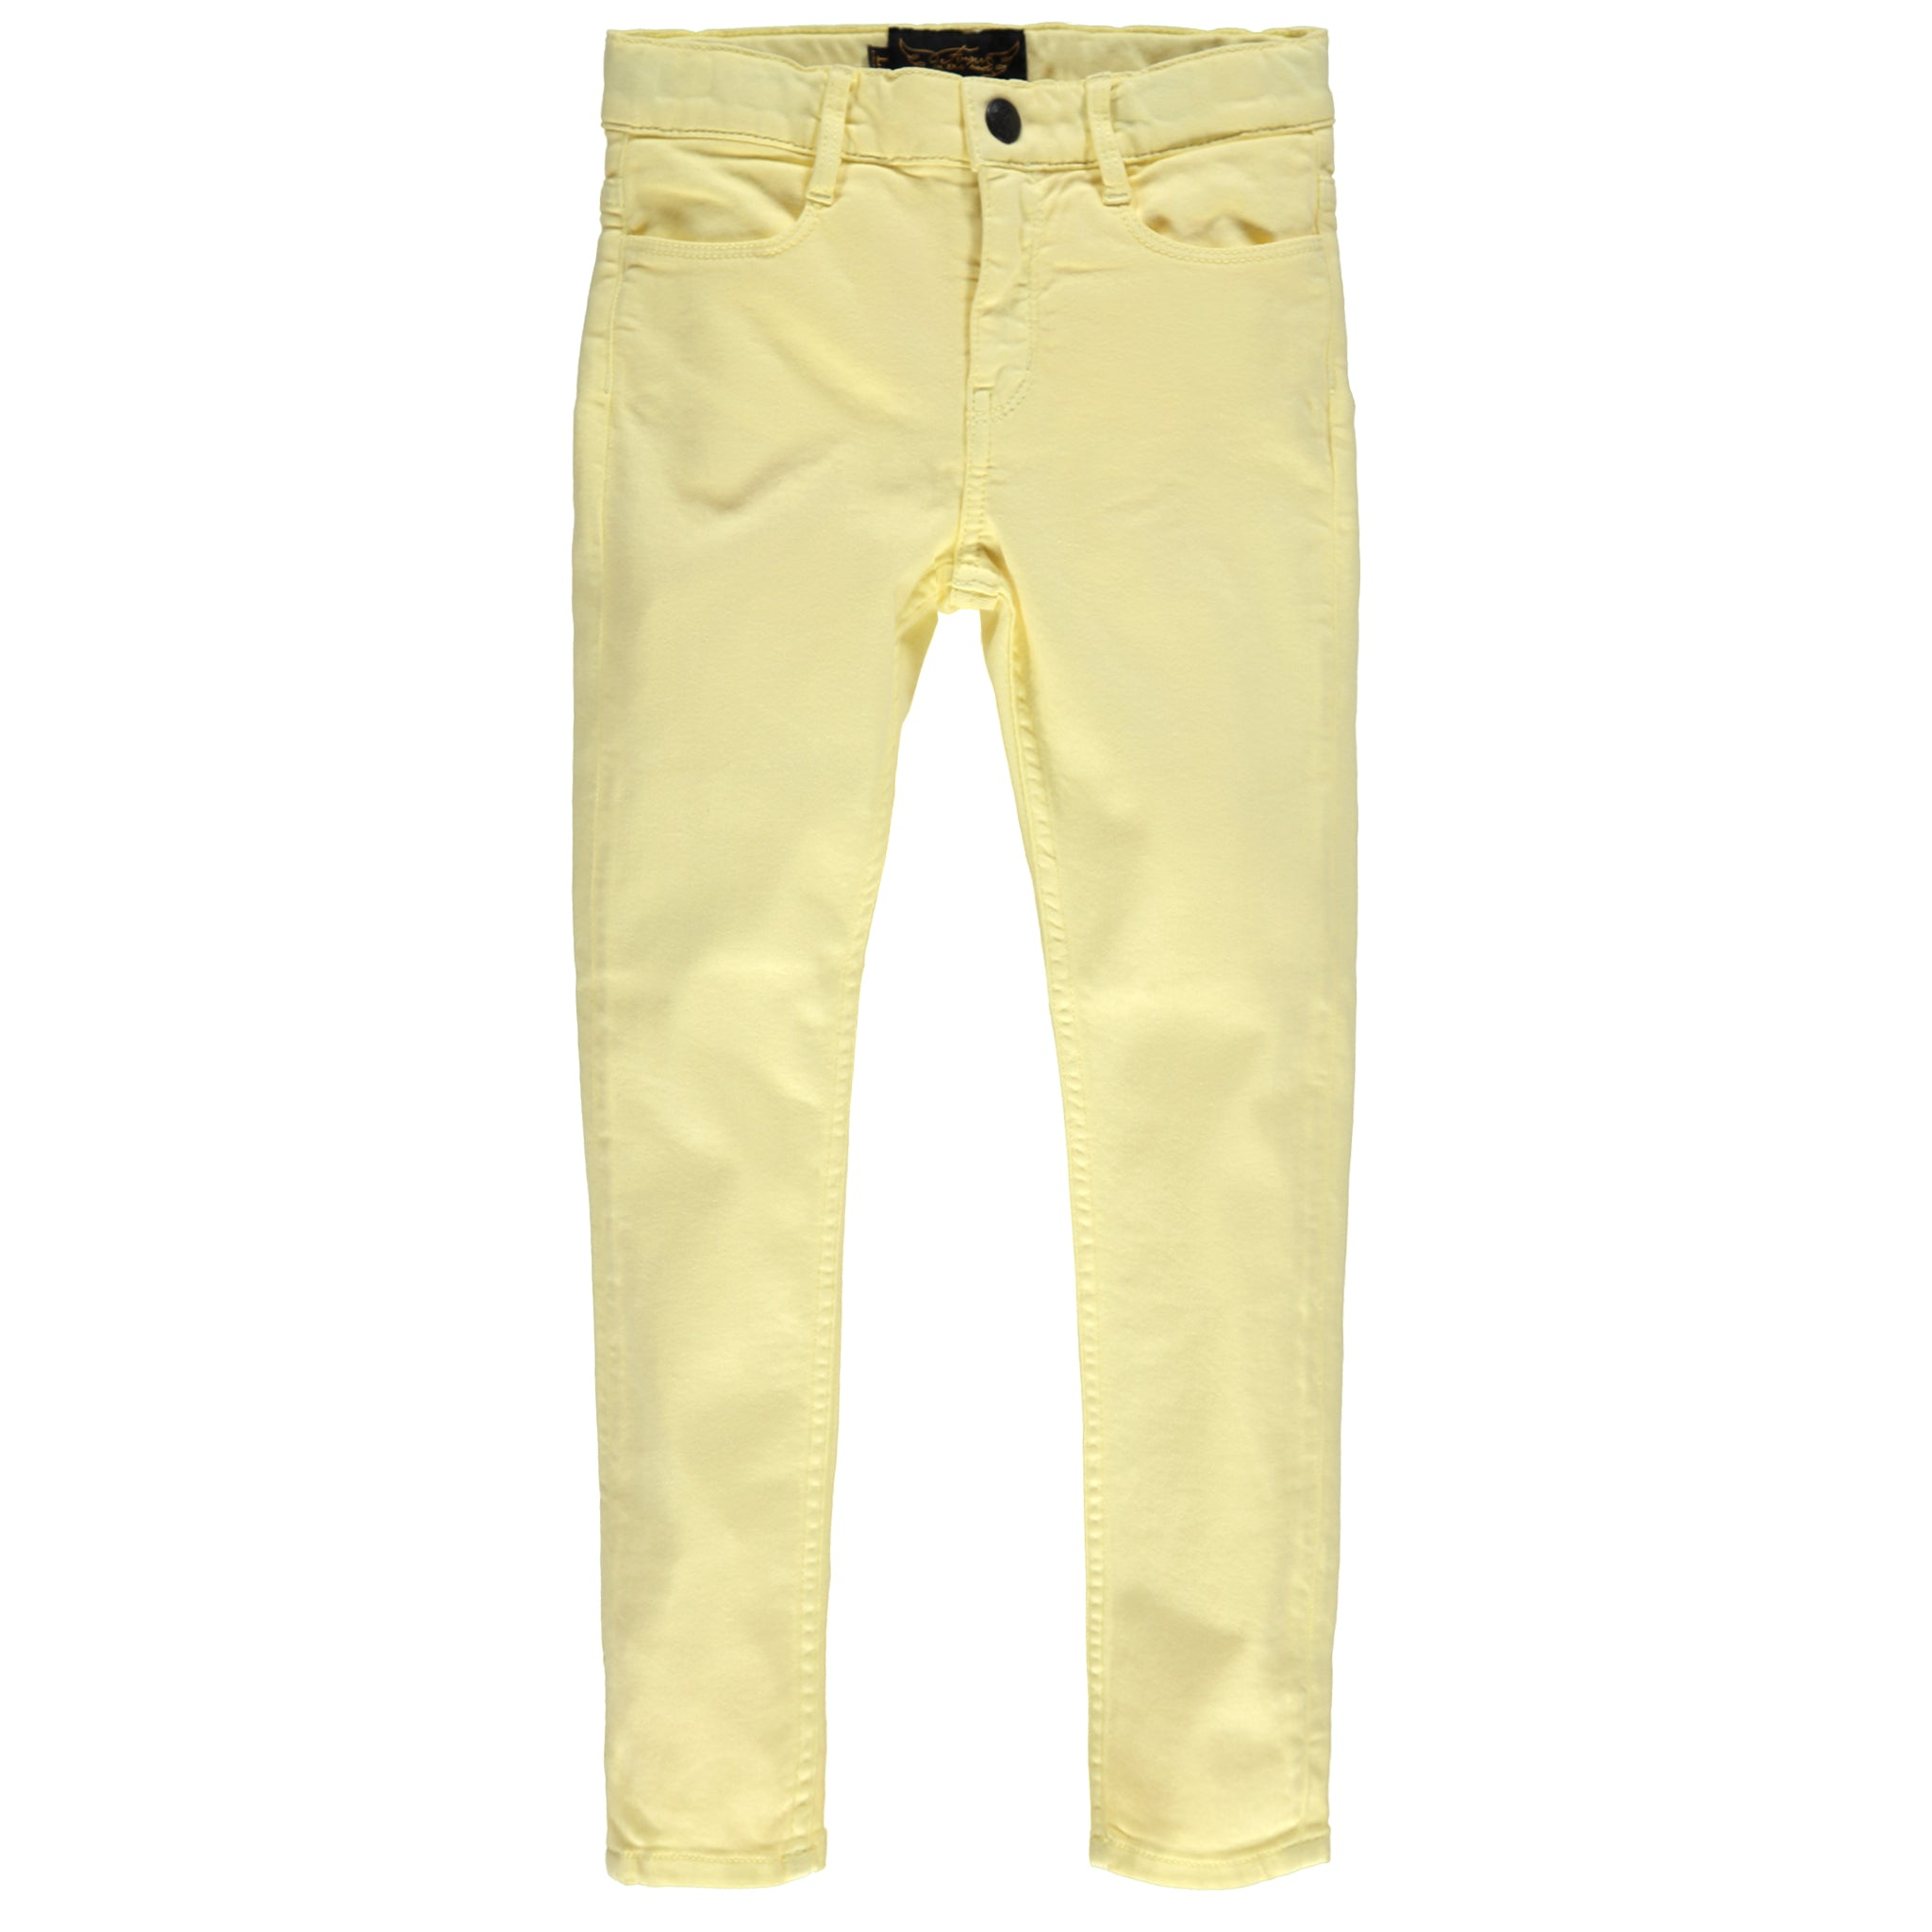 TAMA Pale Yellow - Skinny Fit Jeans